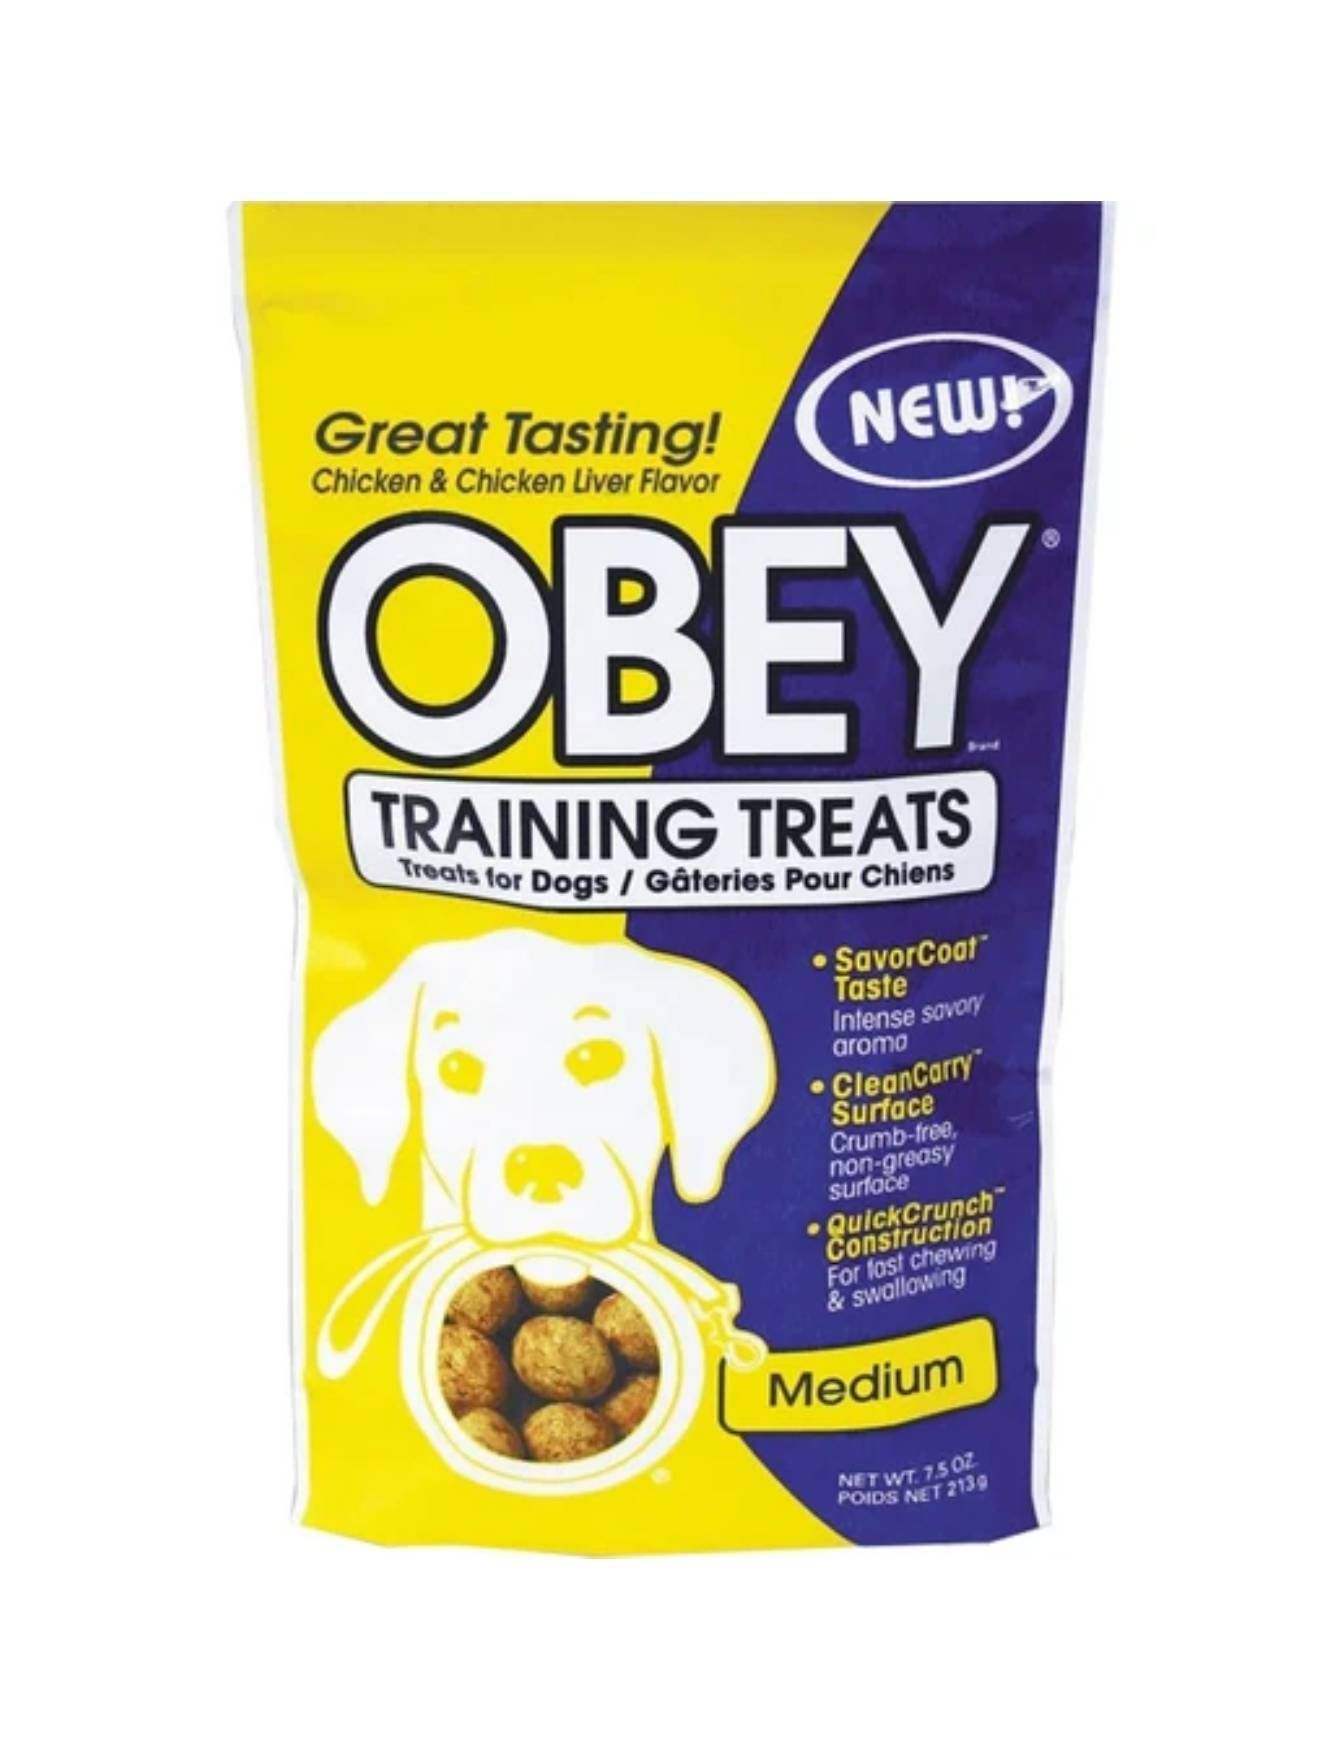 Pro-Treat Freeze Dried Obey Training Treats Medium Dog Treats 7.5oz